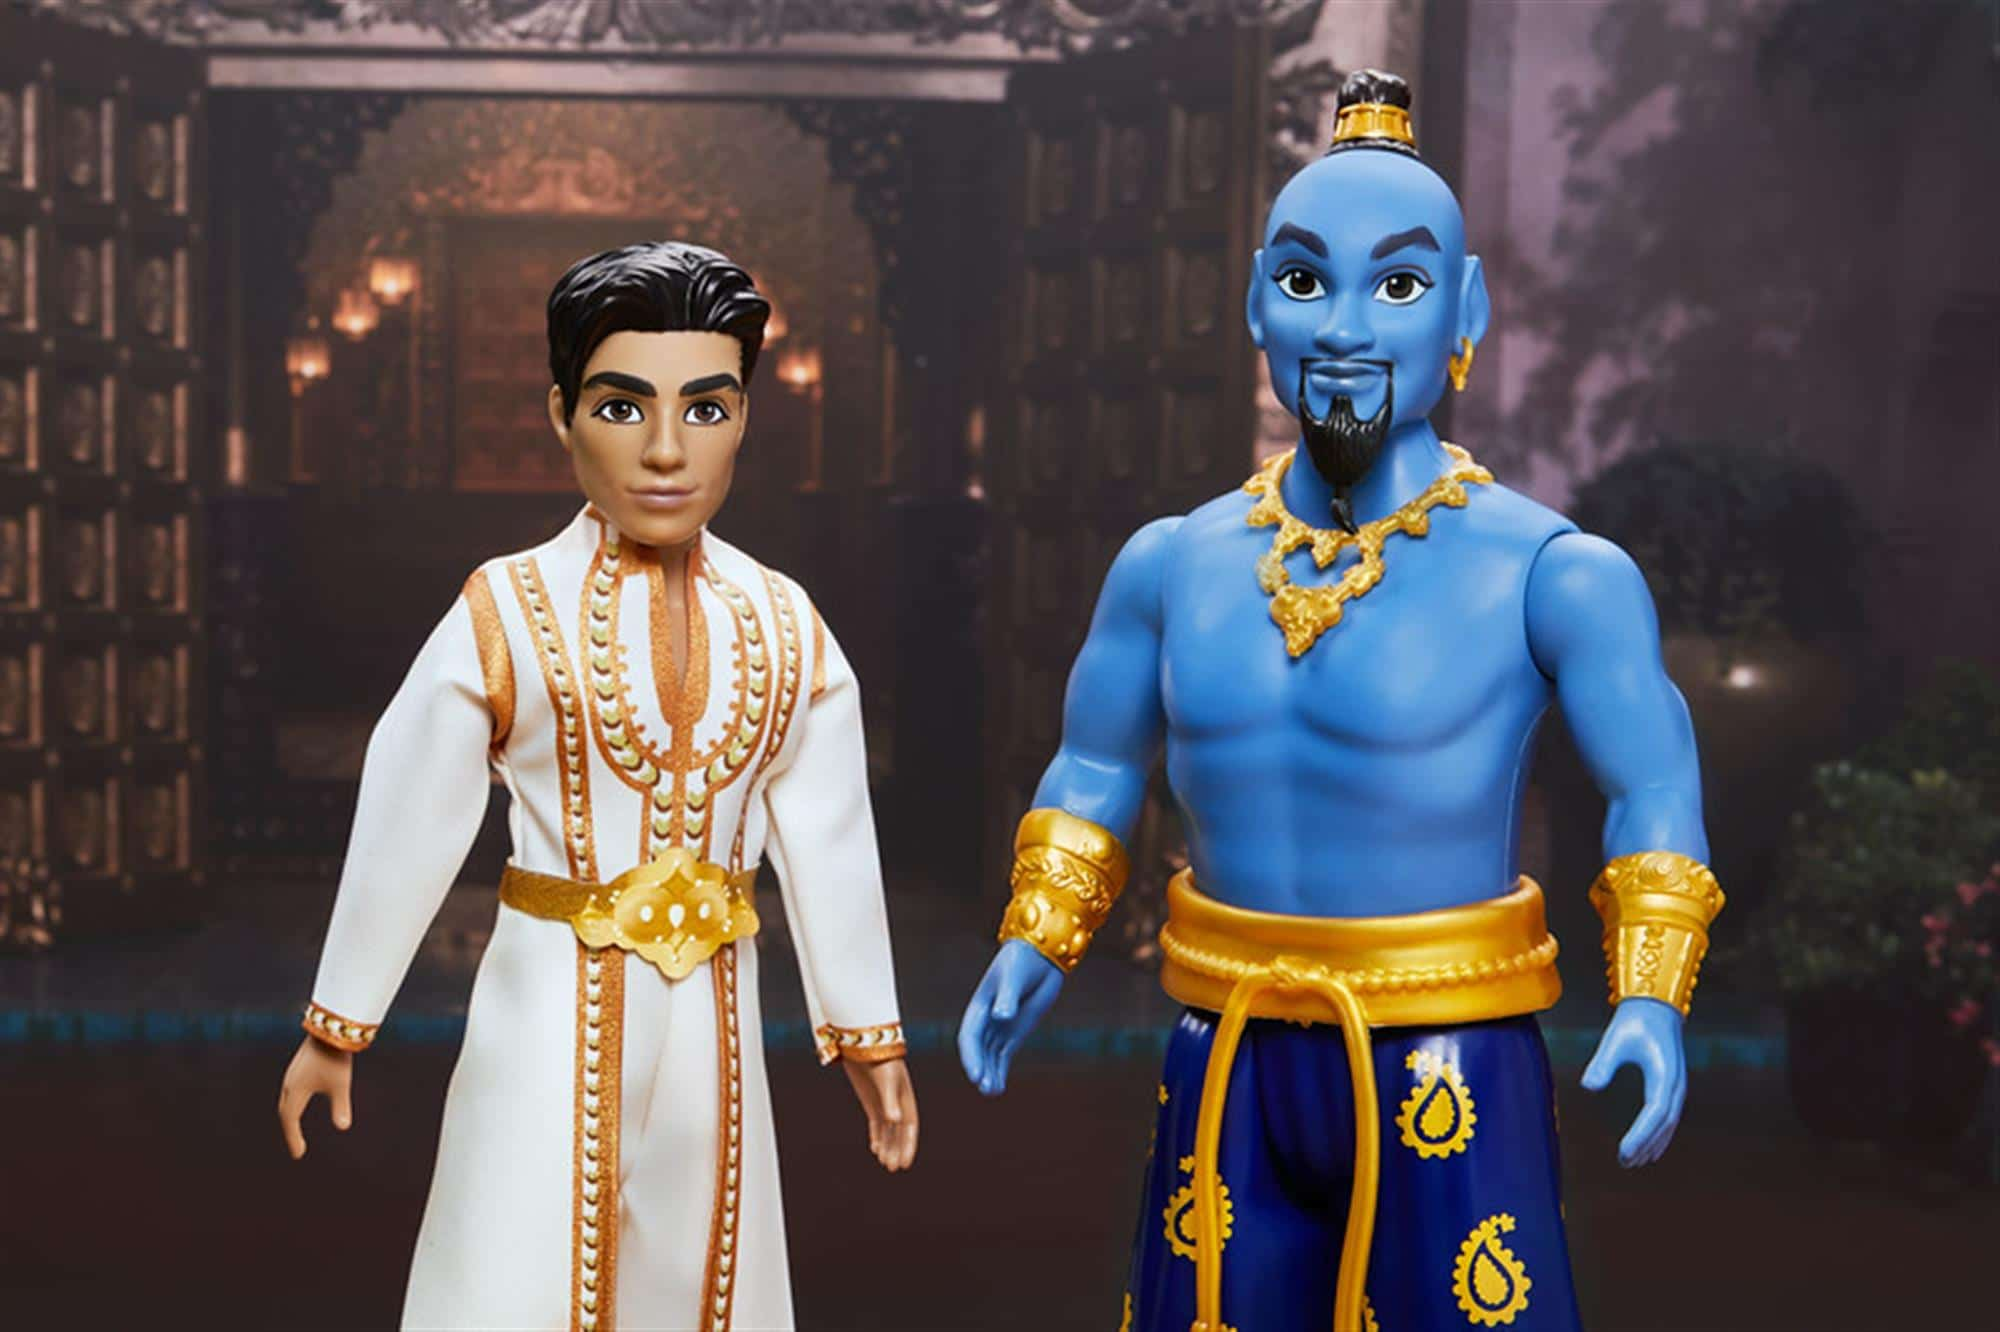 New Toy Images Reveal Will Smith's Full Genie Costume In Aladdin